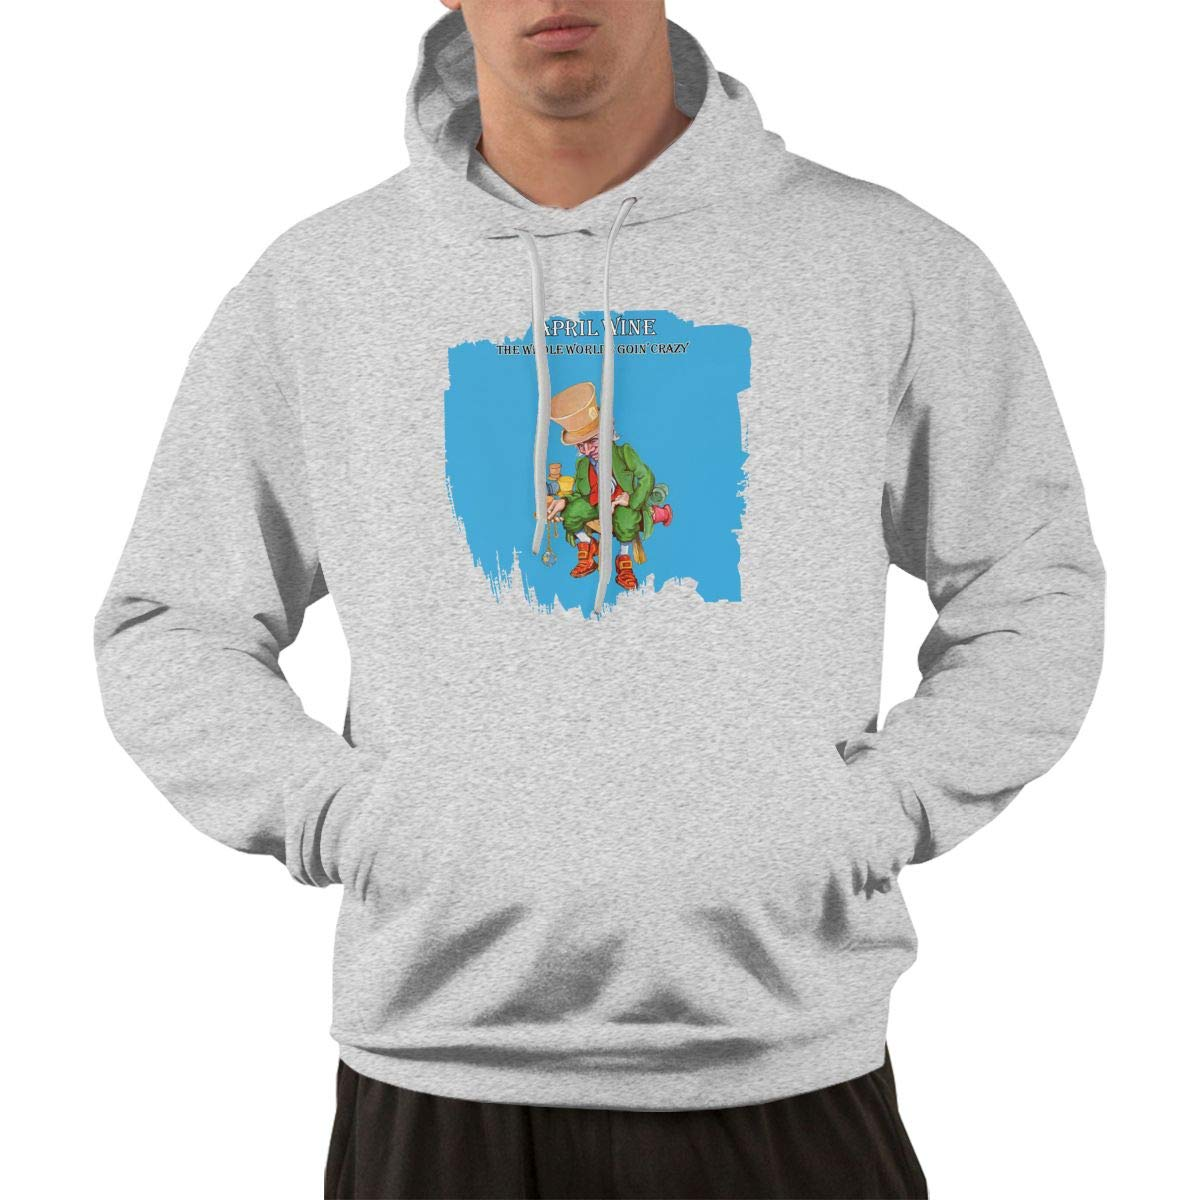 Erman Pullover Warm Gray Print April Wine Hooded Shirts With Pocket M